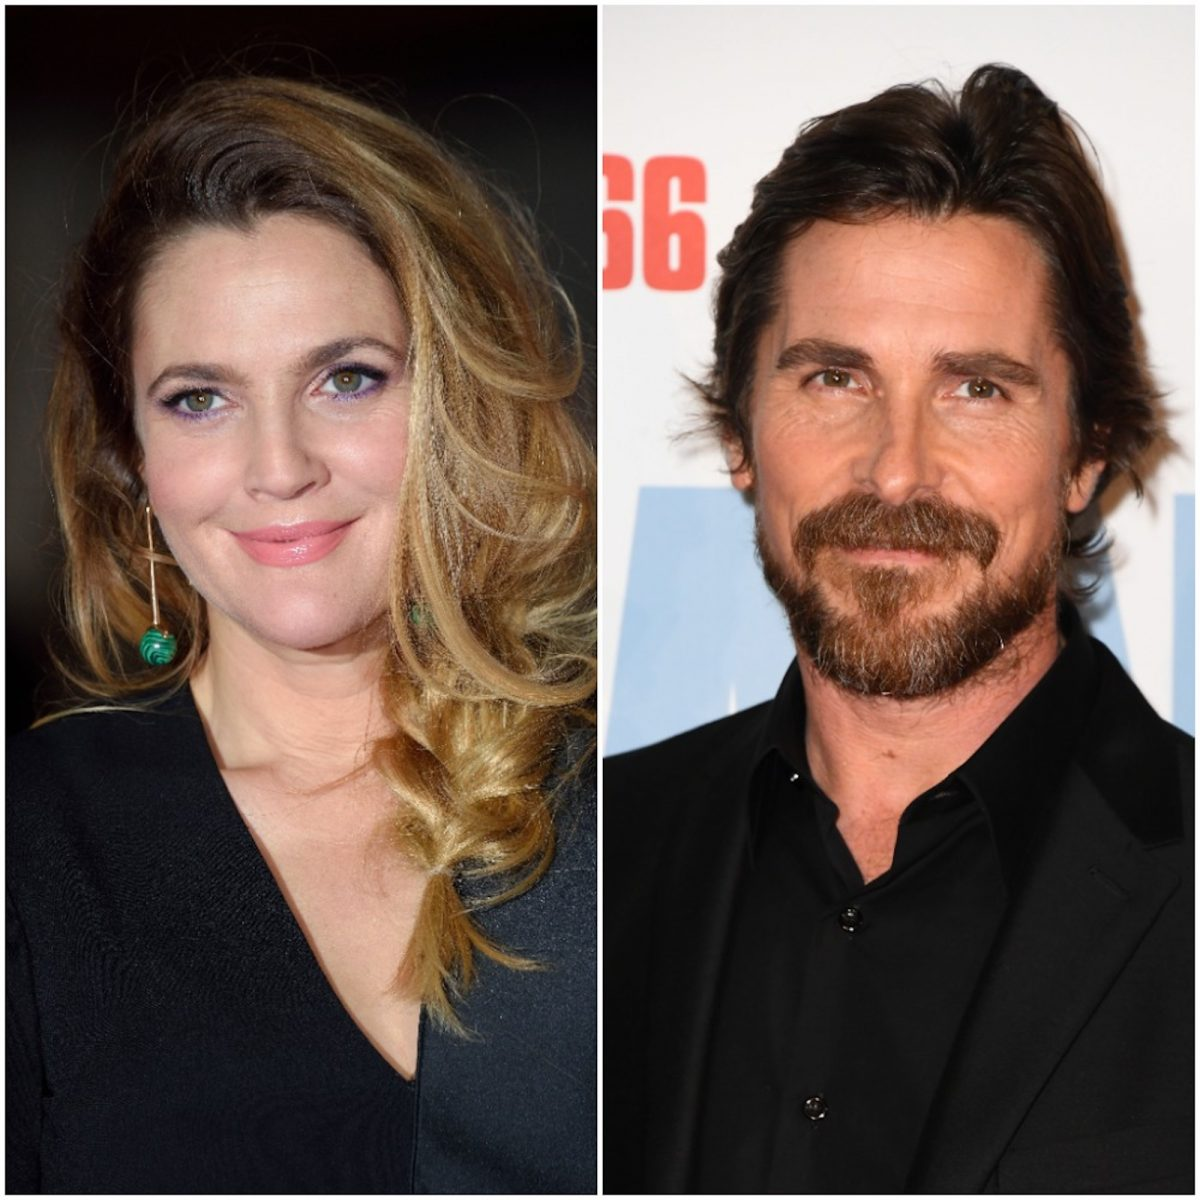 Drew Barrymore and Christian Bale